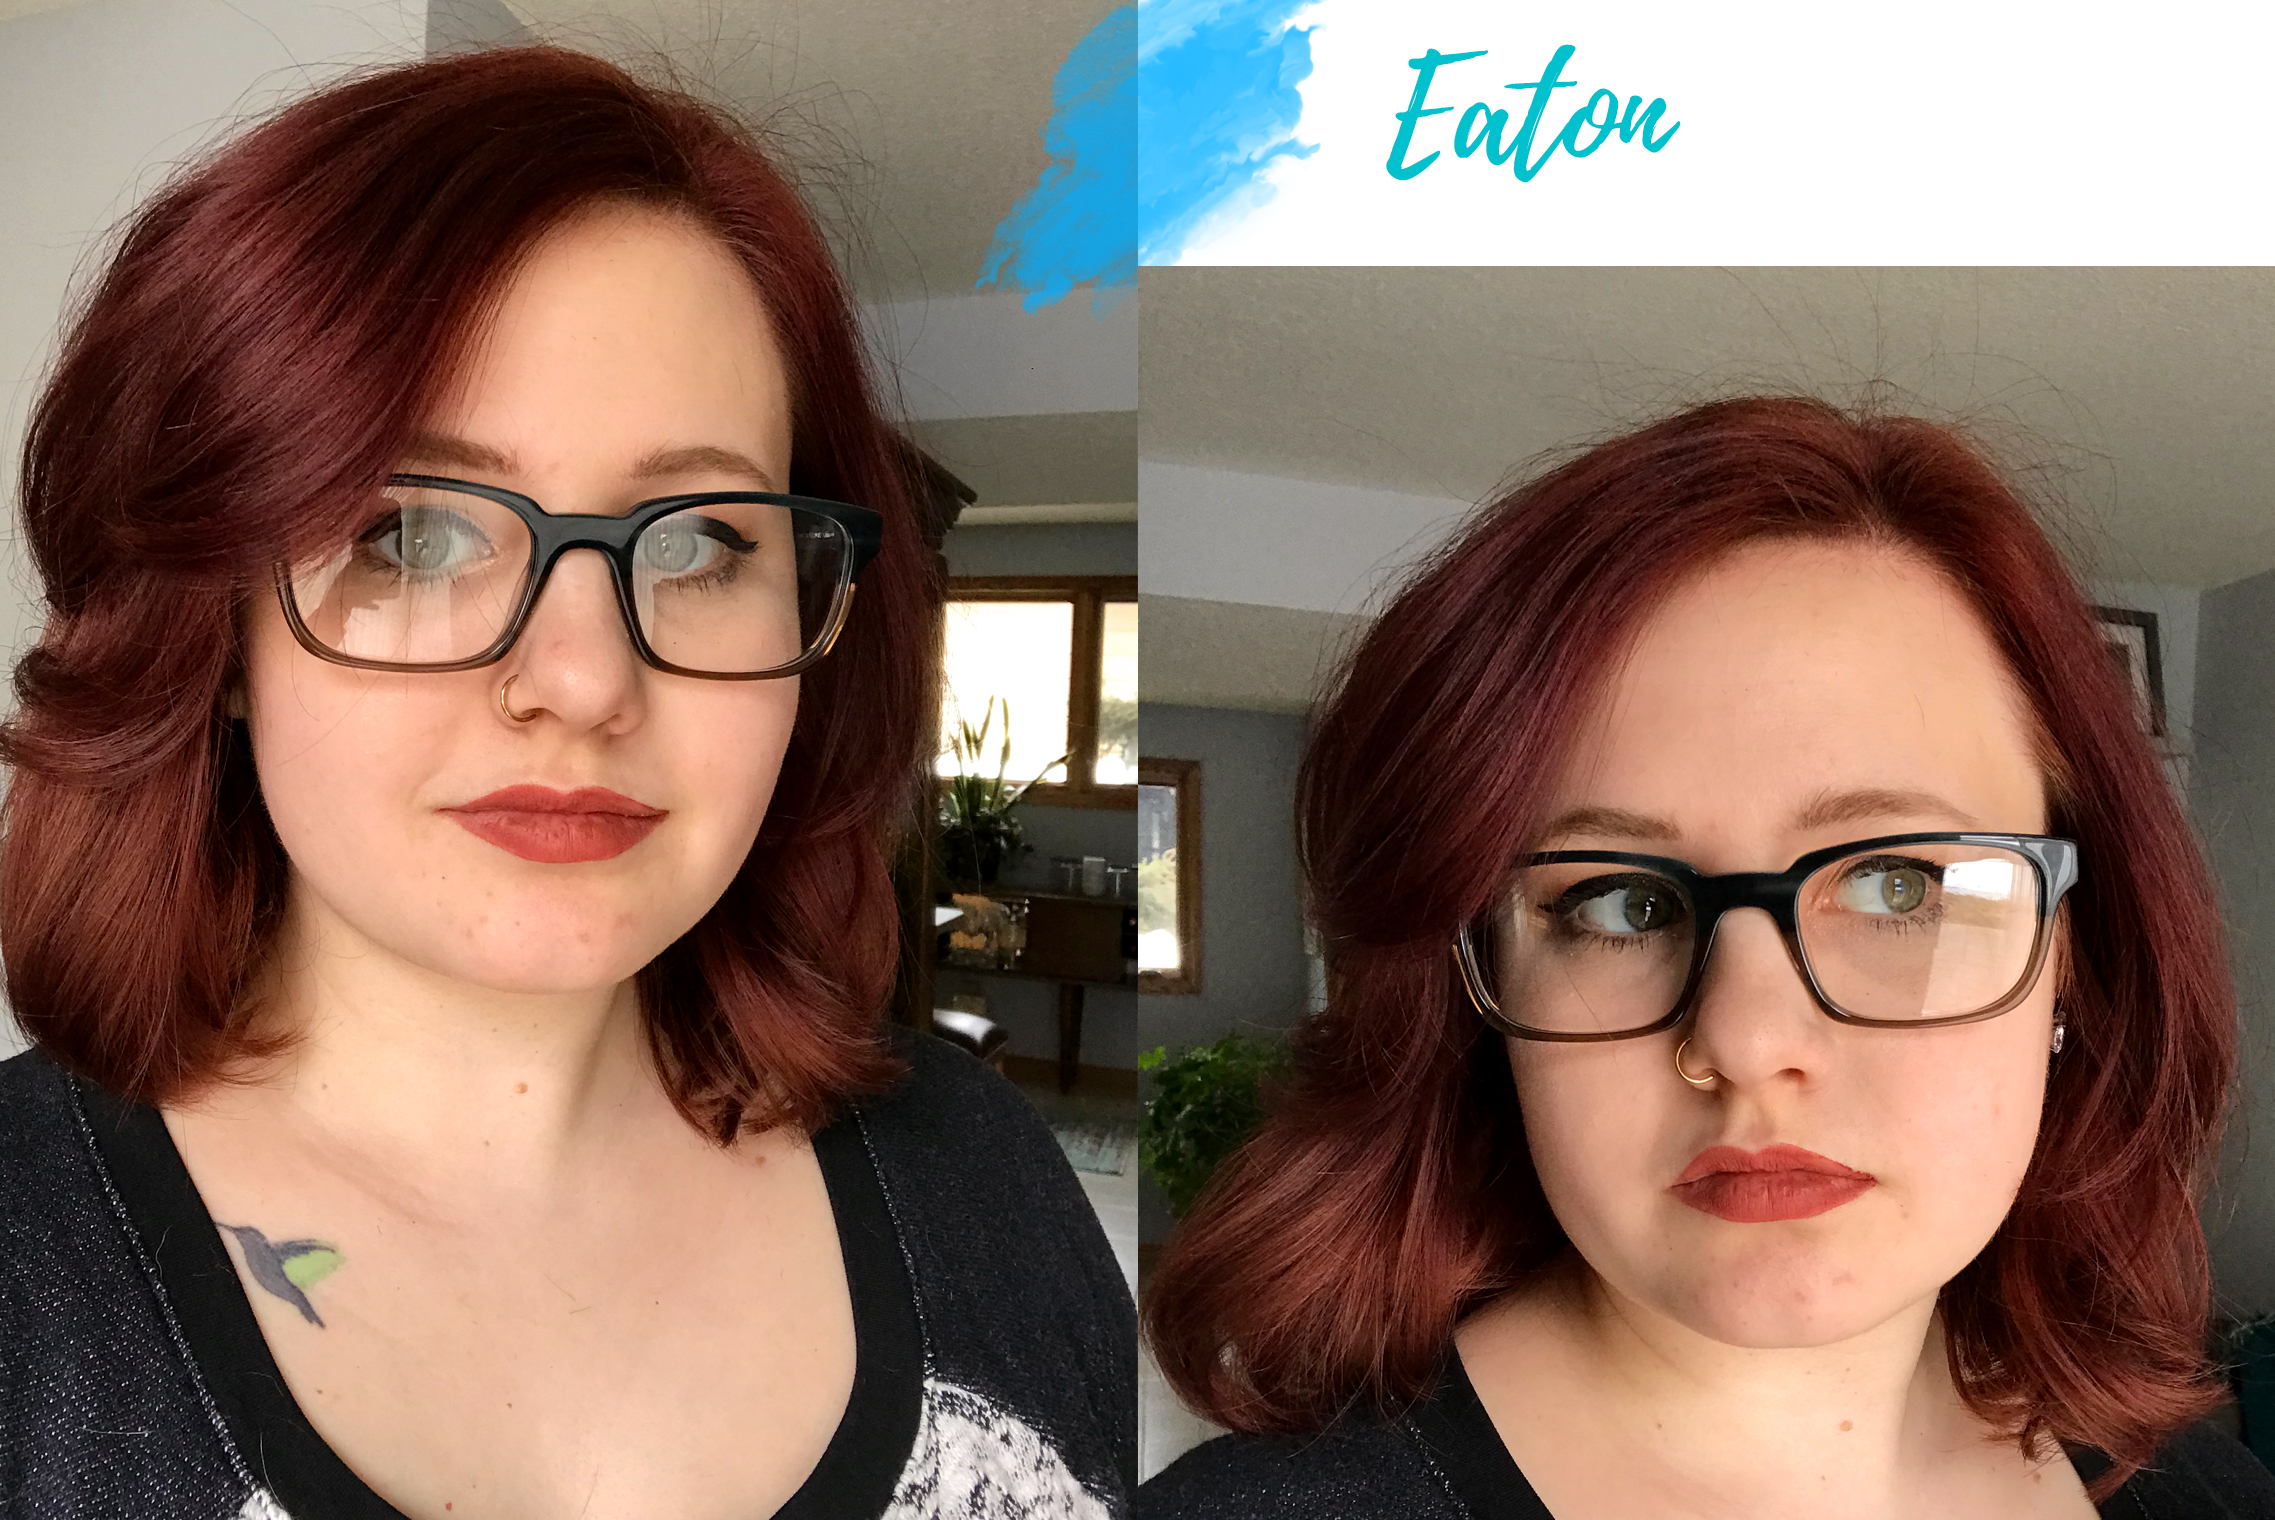 Warby Parker Eaton glasses